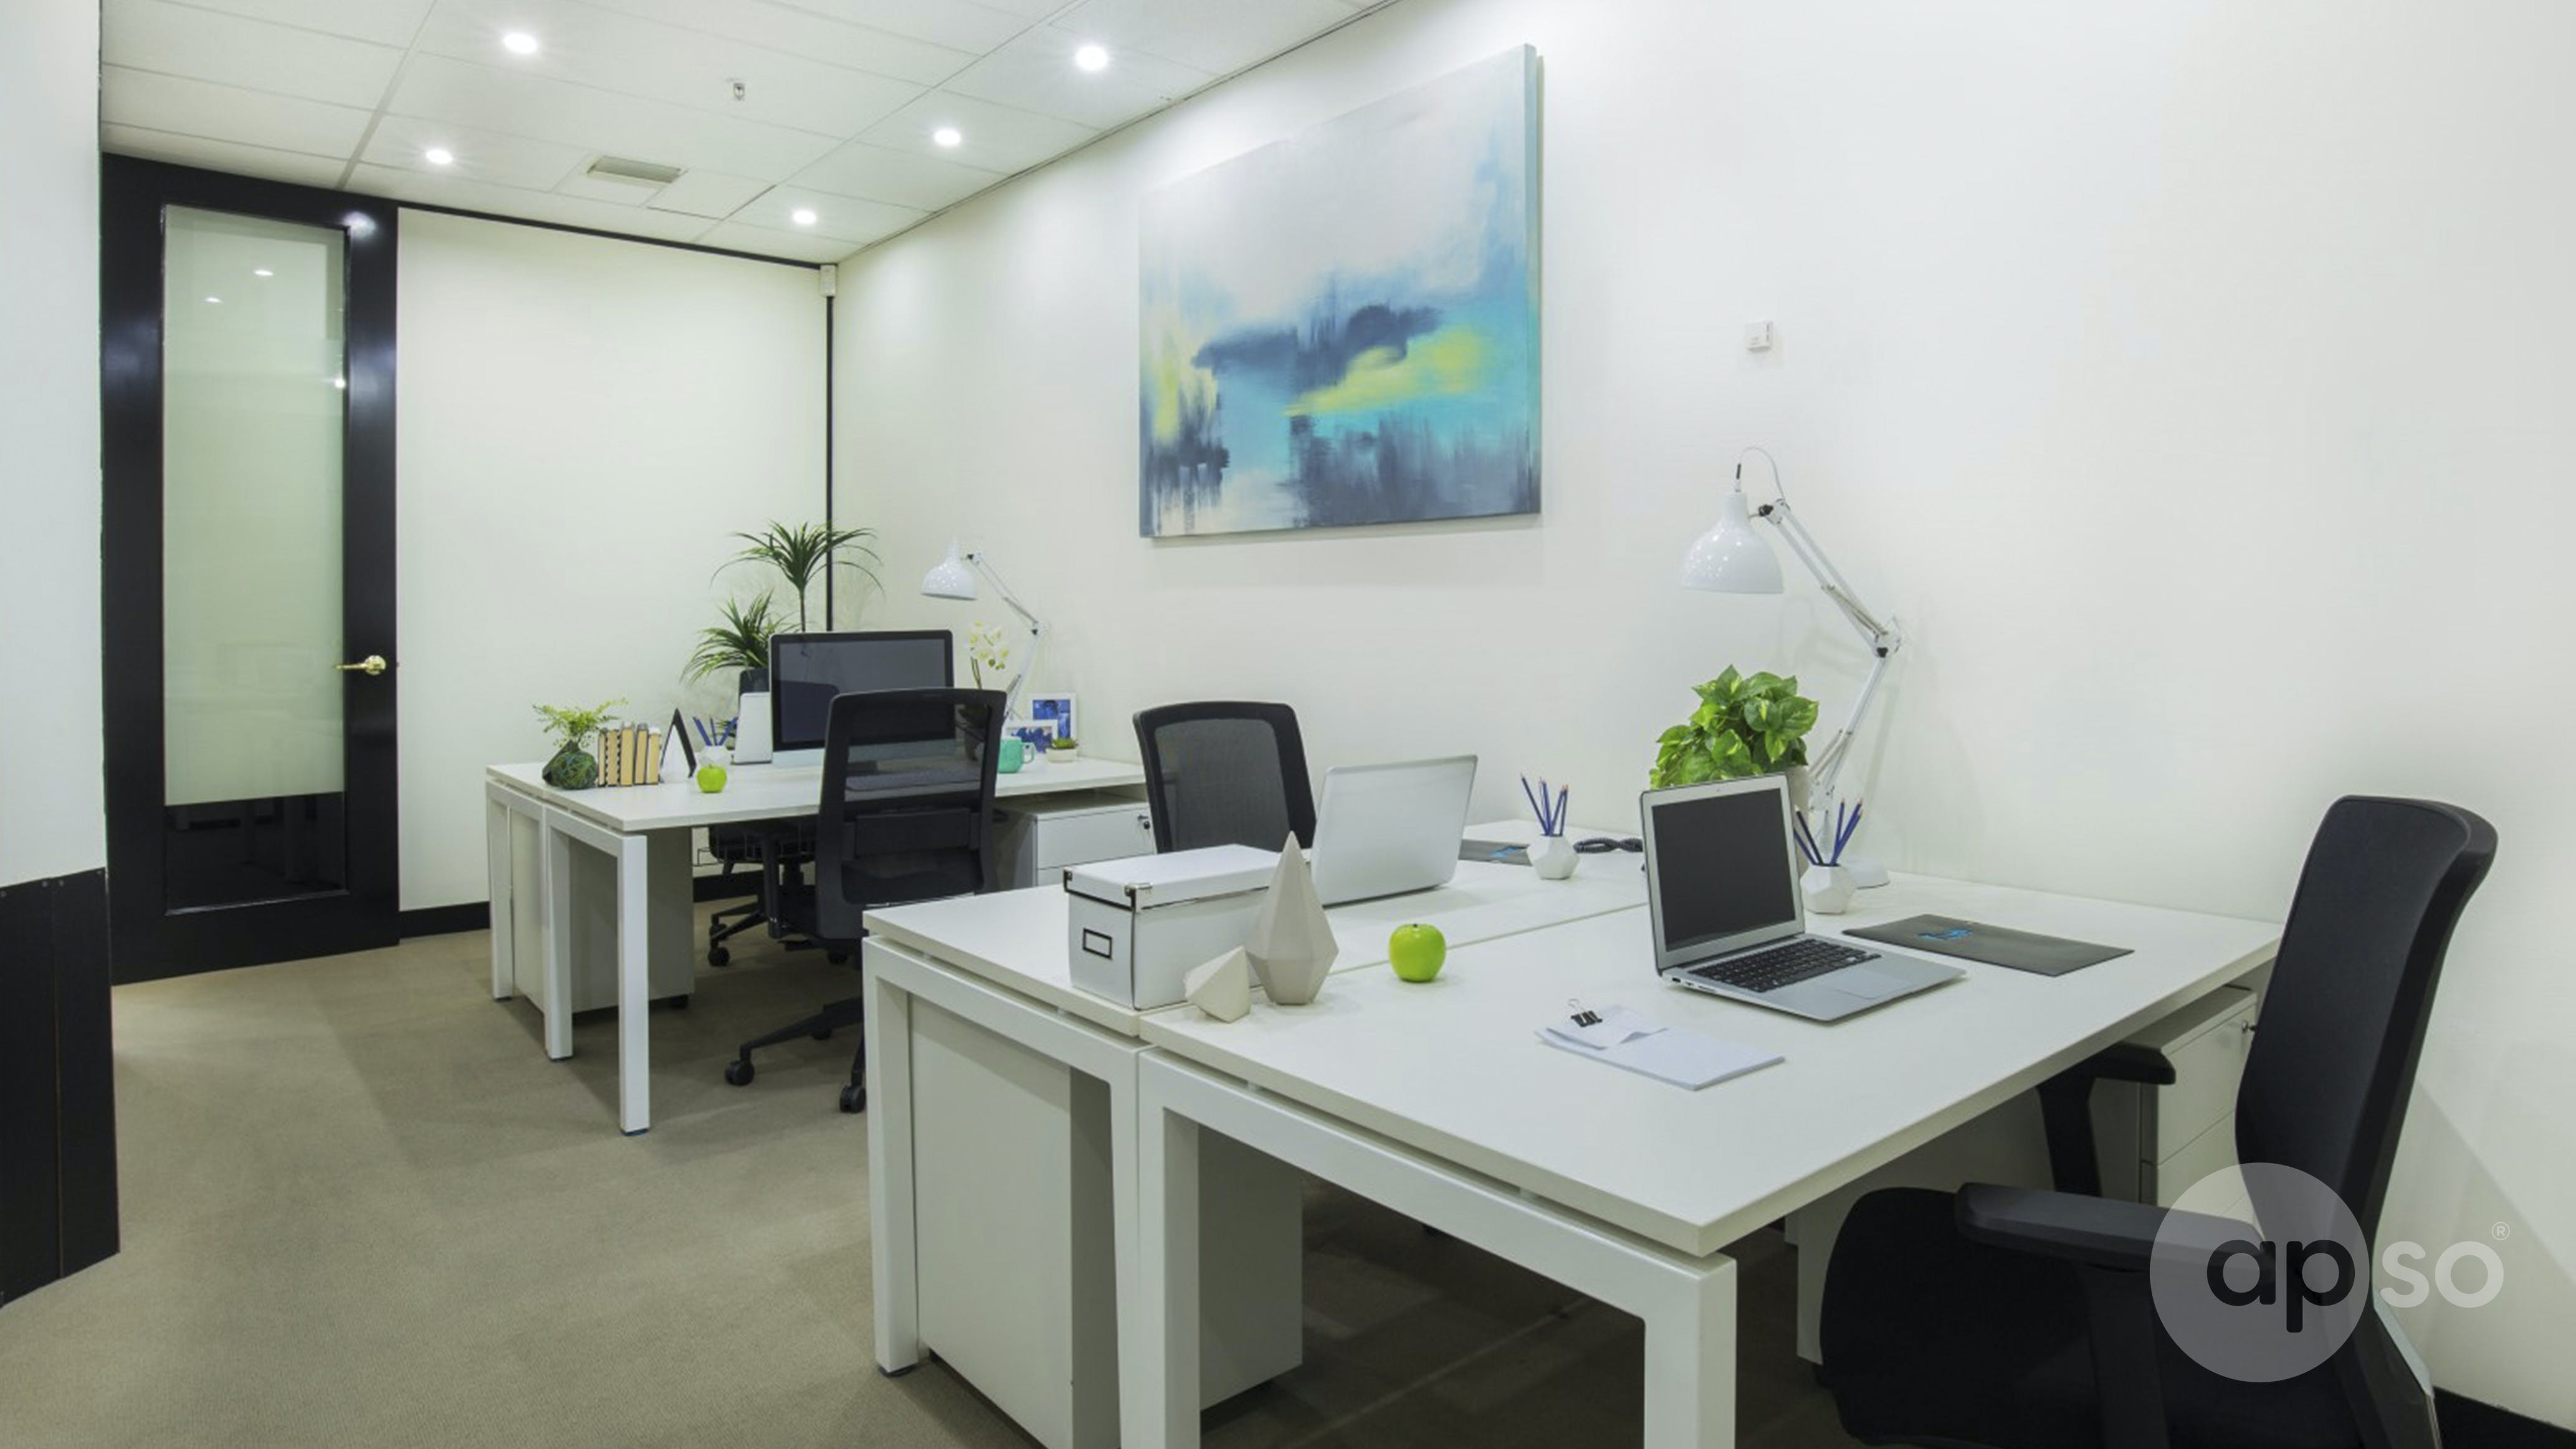 Suite 1138, private office at St Kilda Rd Towers, image 3